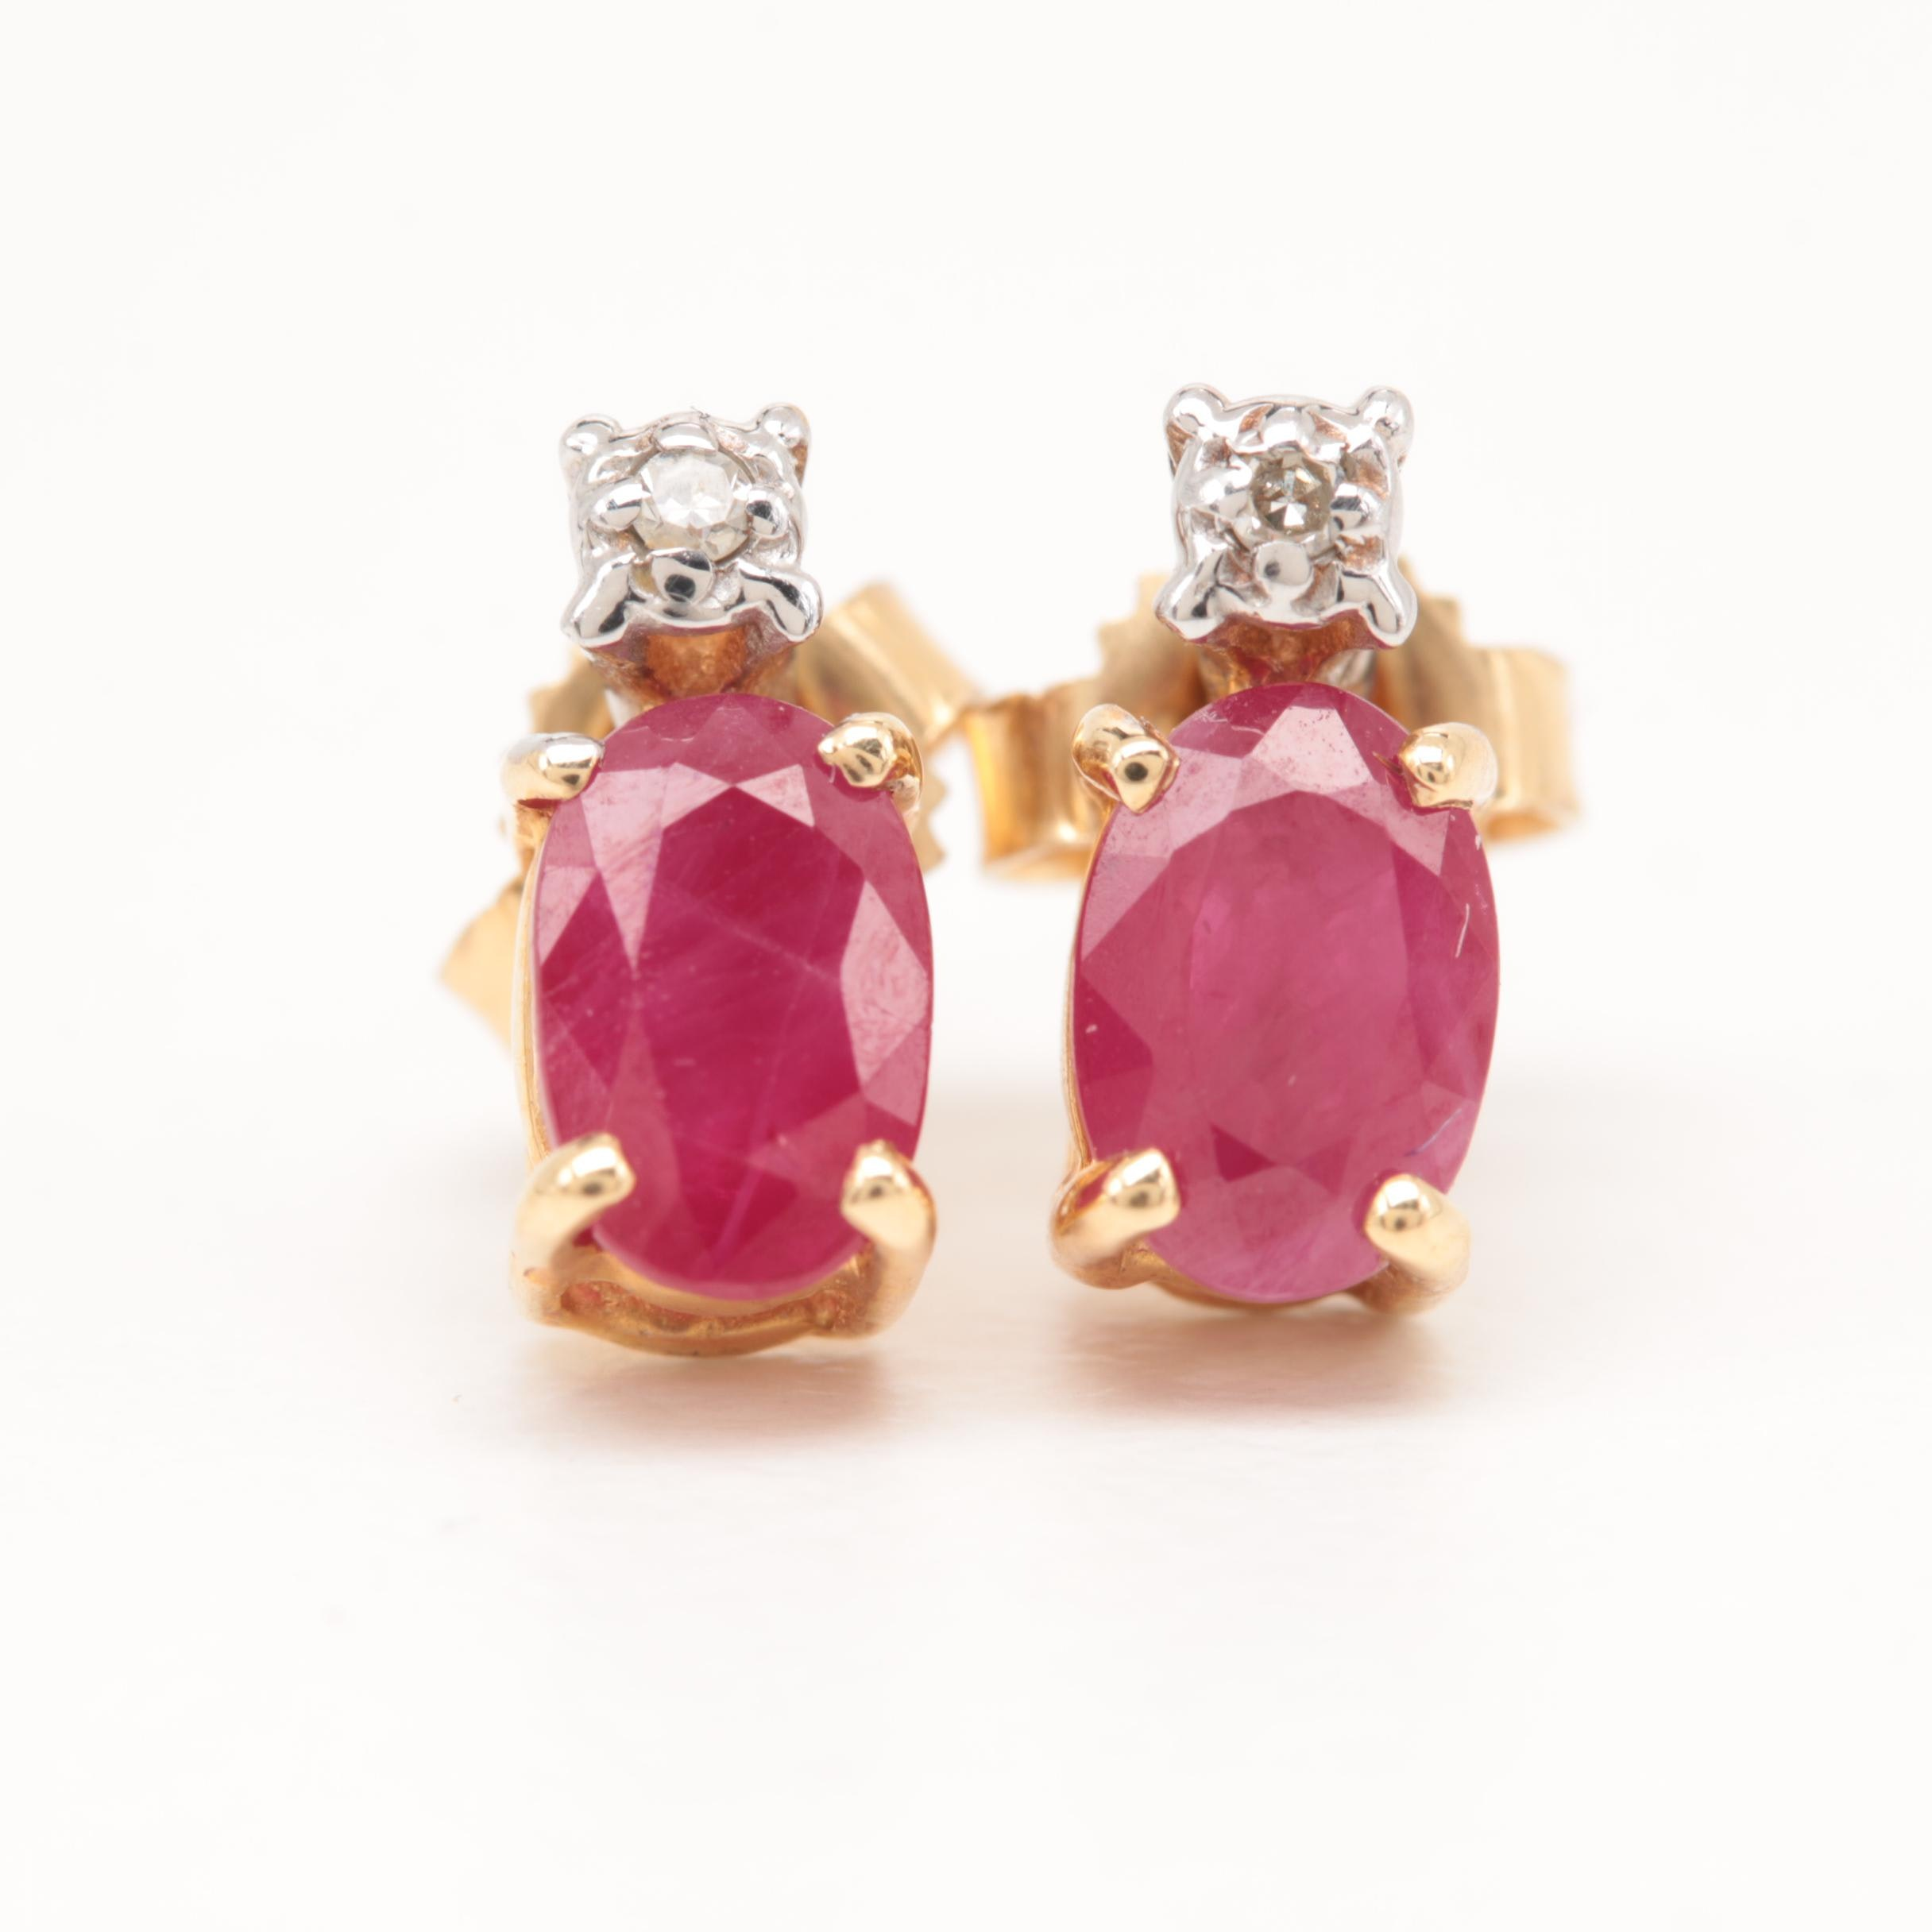 14K Yellow Gold Ruby and Diamond Earrings with 14K White Gold Accents